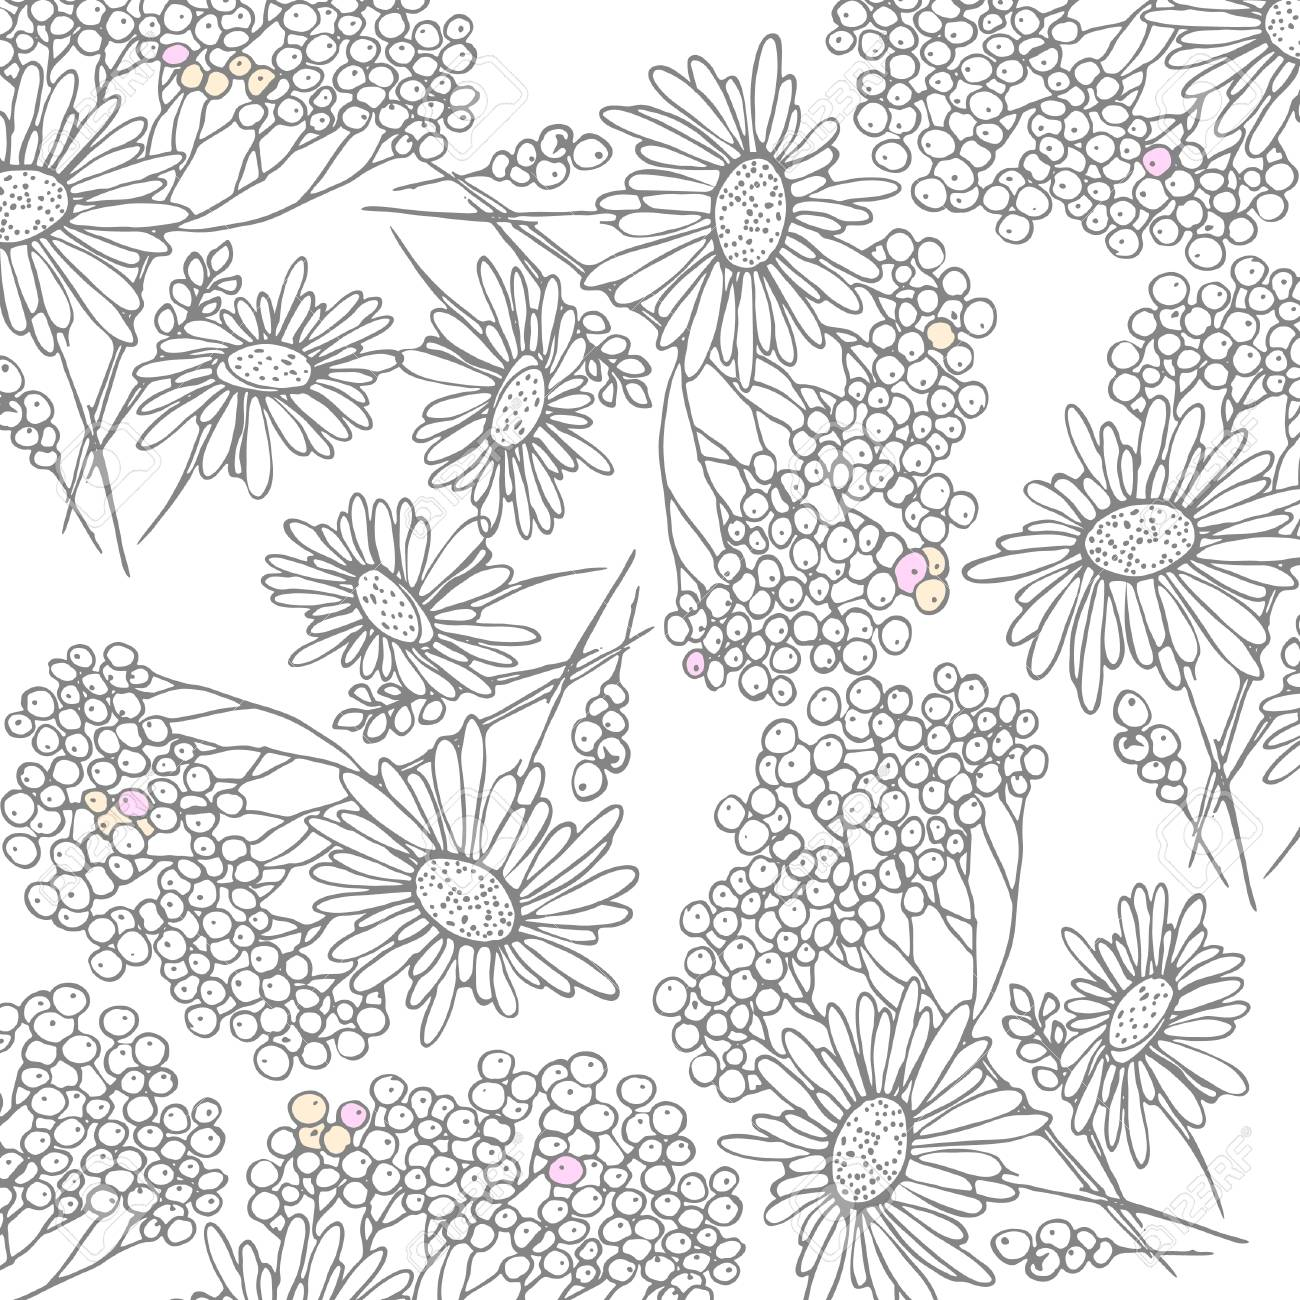 Floral Texture With Chamomile On A White Background It Can Be